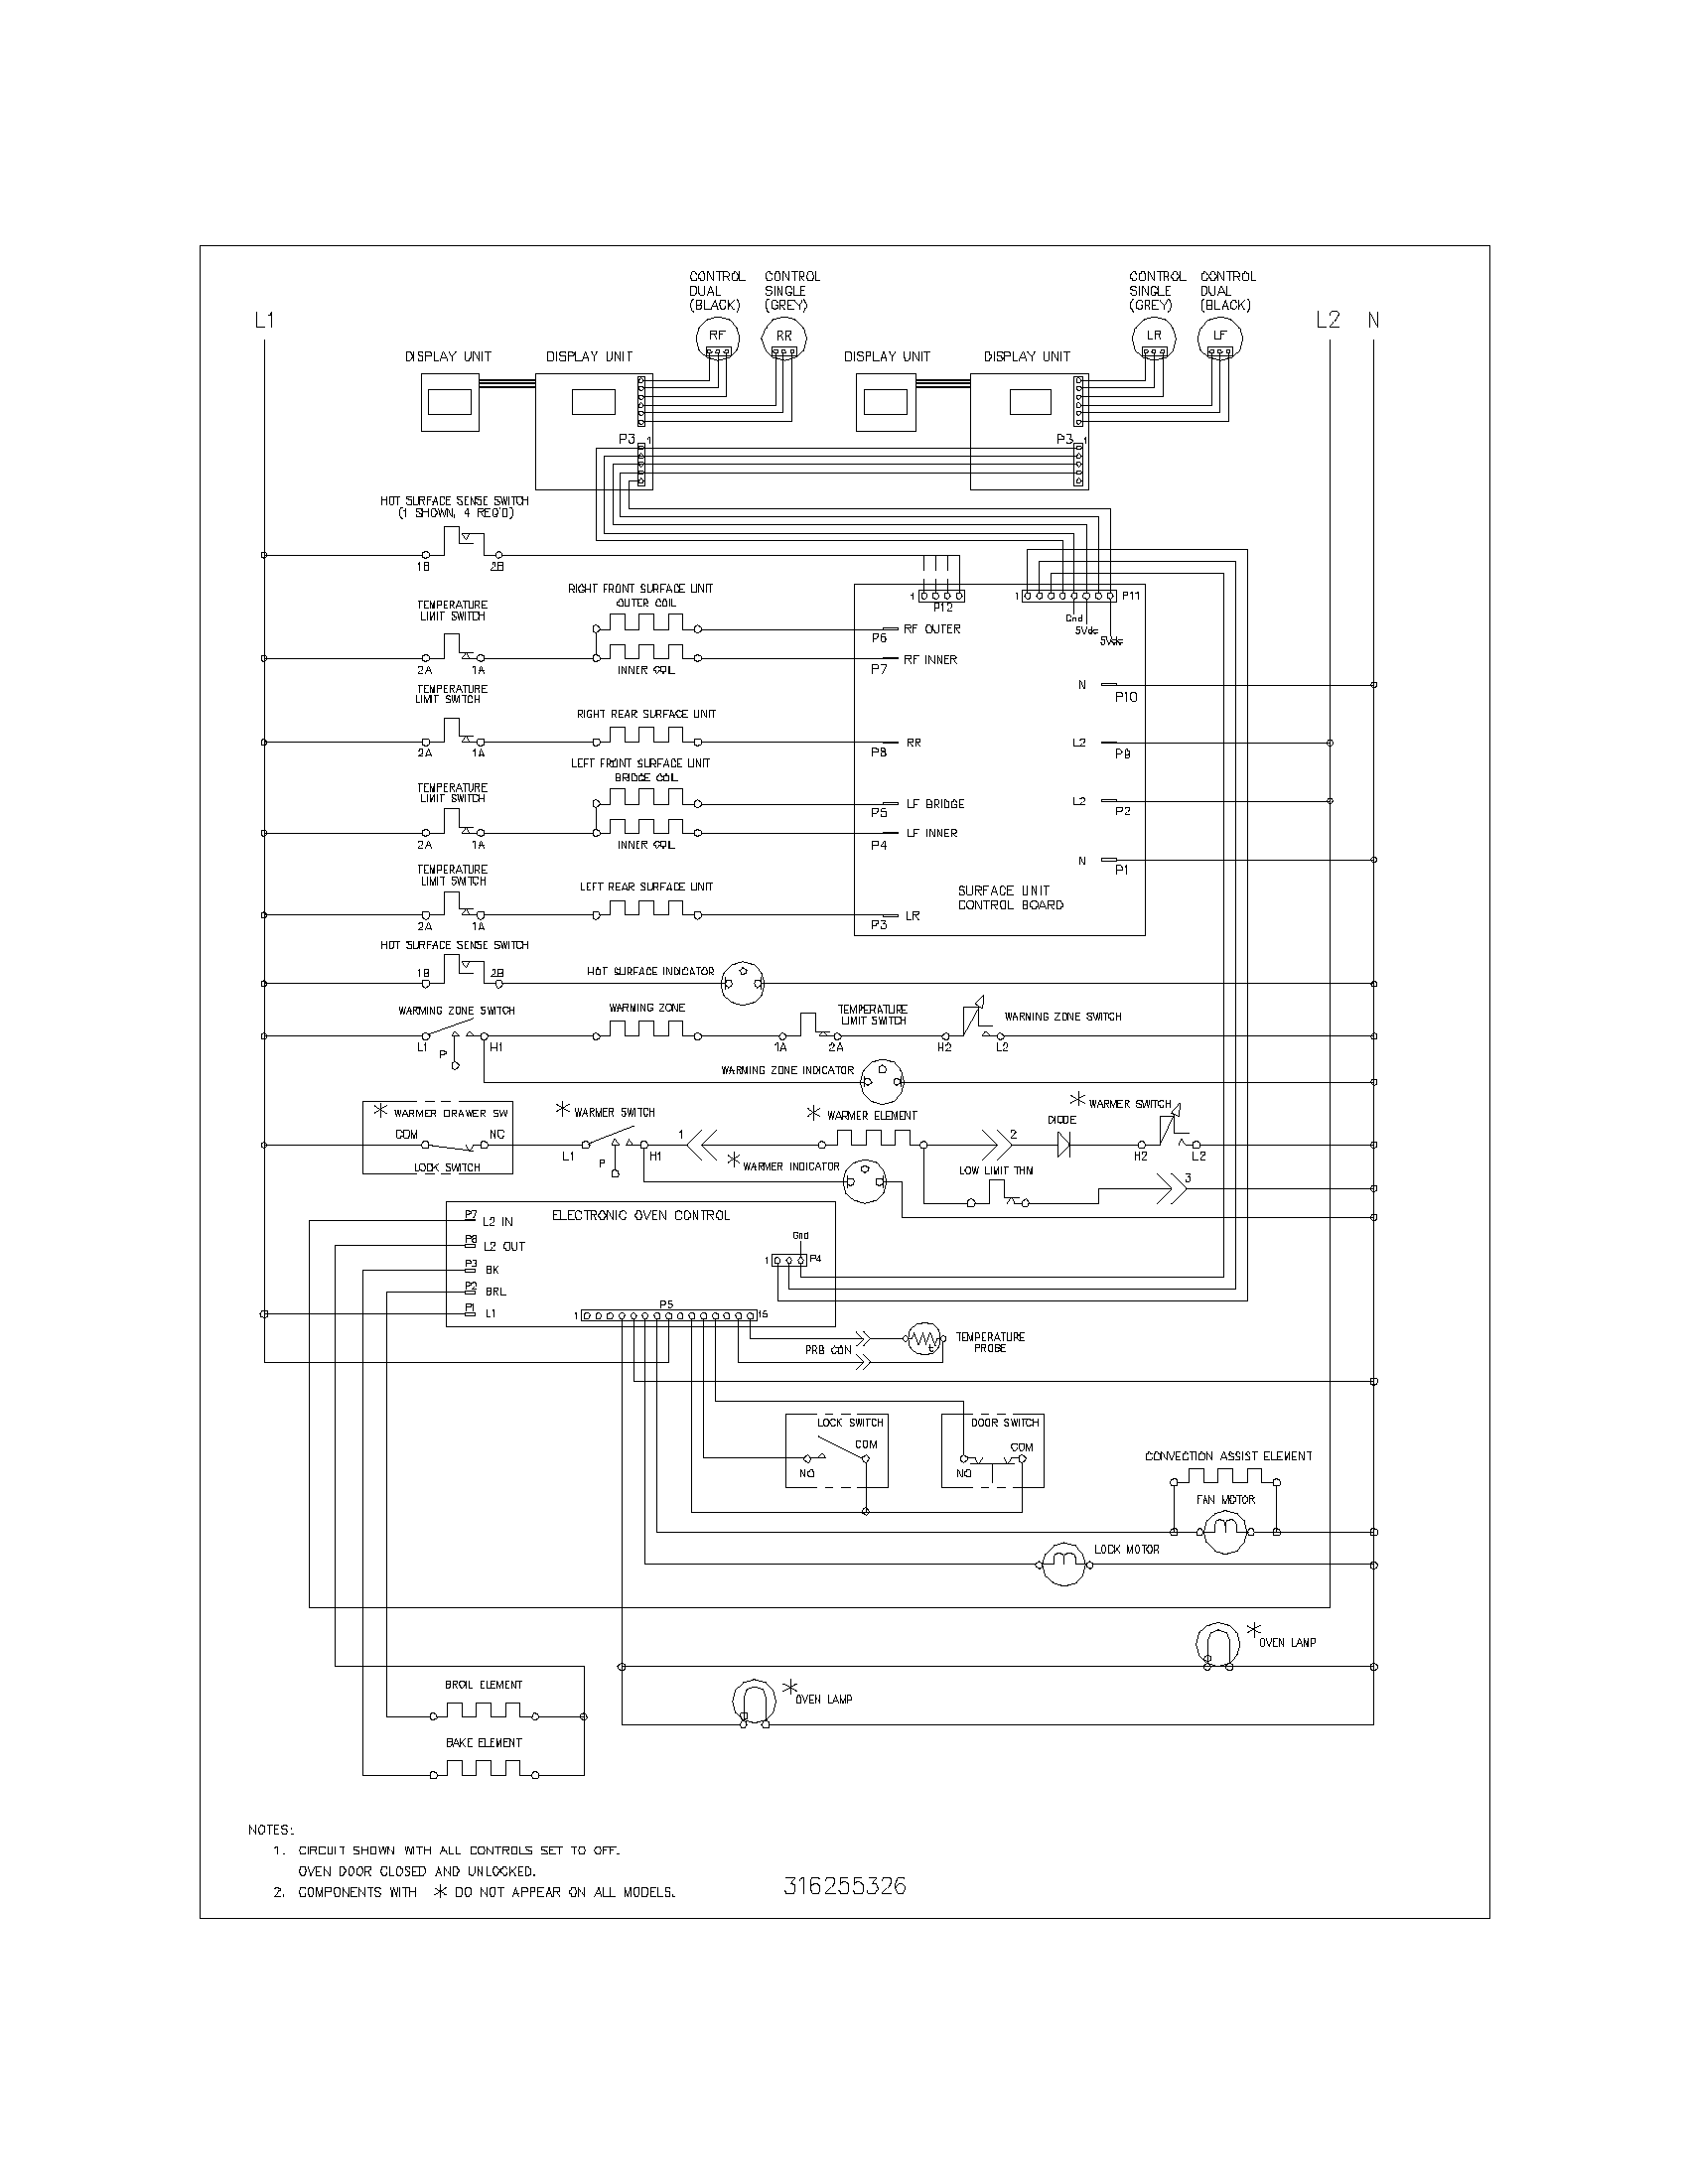 Surface Wiring Diagram Imperial Diagrams Detailed Range Auto Electrical Basic Schematic Convection